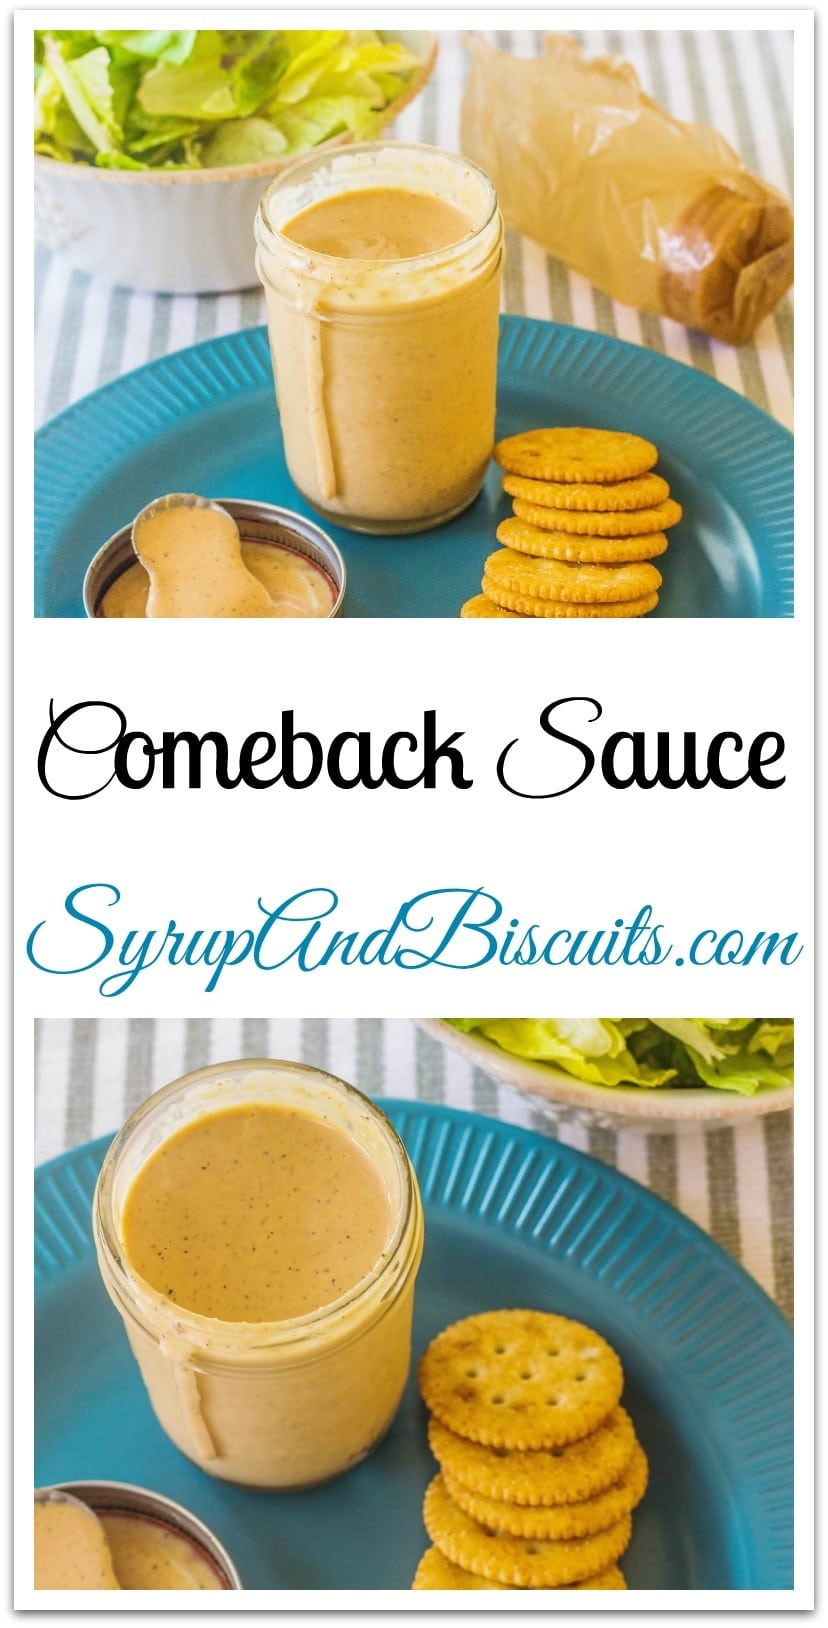 The sauce that's served by the steak house chain made famous by the onions that bloom, is reminiscent of Comeback Sauce.  Chances are you've had it on a burger or sandwich at a new age sandwich shop.  It's a versatile sauce that also makes a great salad dressing. #ComebackSauce #VersatileSauce